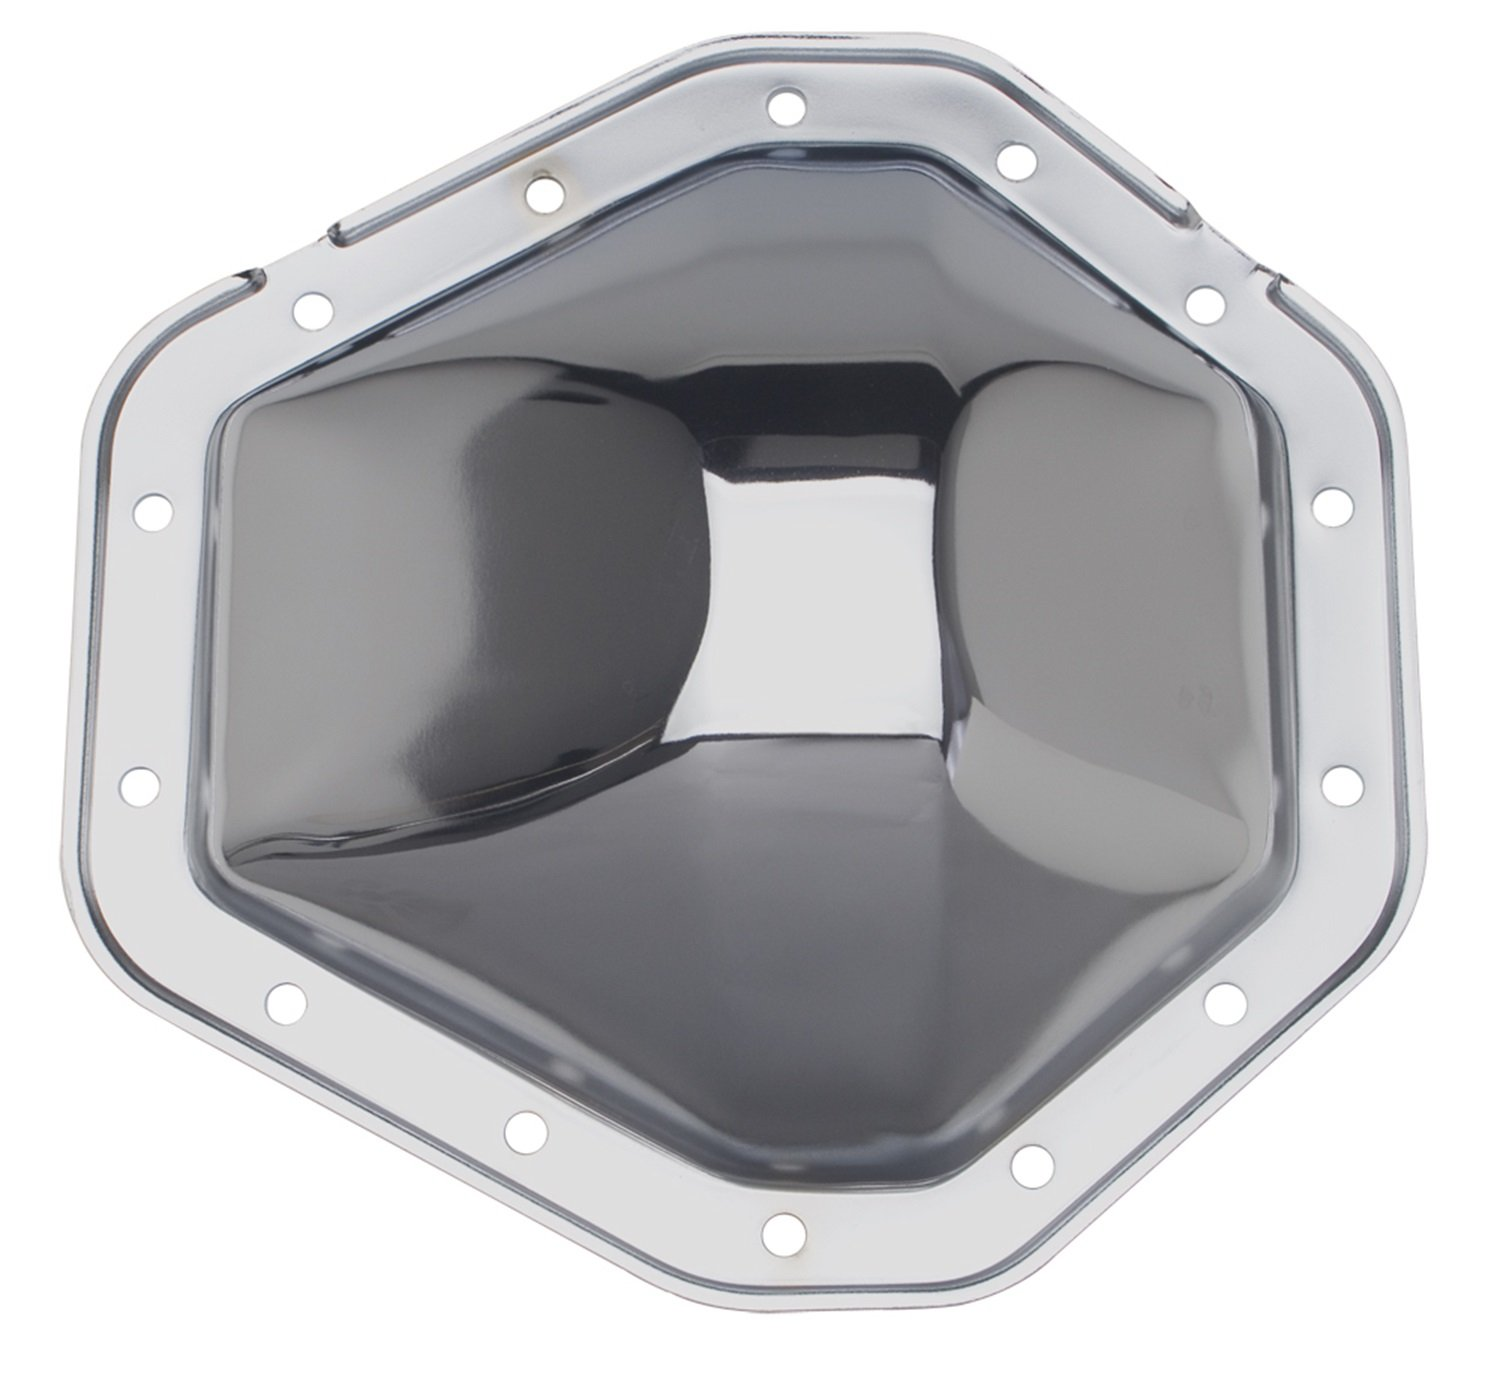 Trans-Dapt 9047 Chrome Differential Cover Kit Trans-Dapt Performance